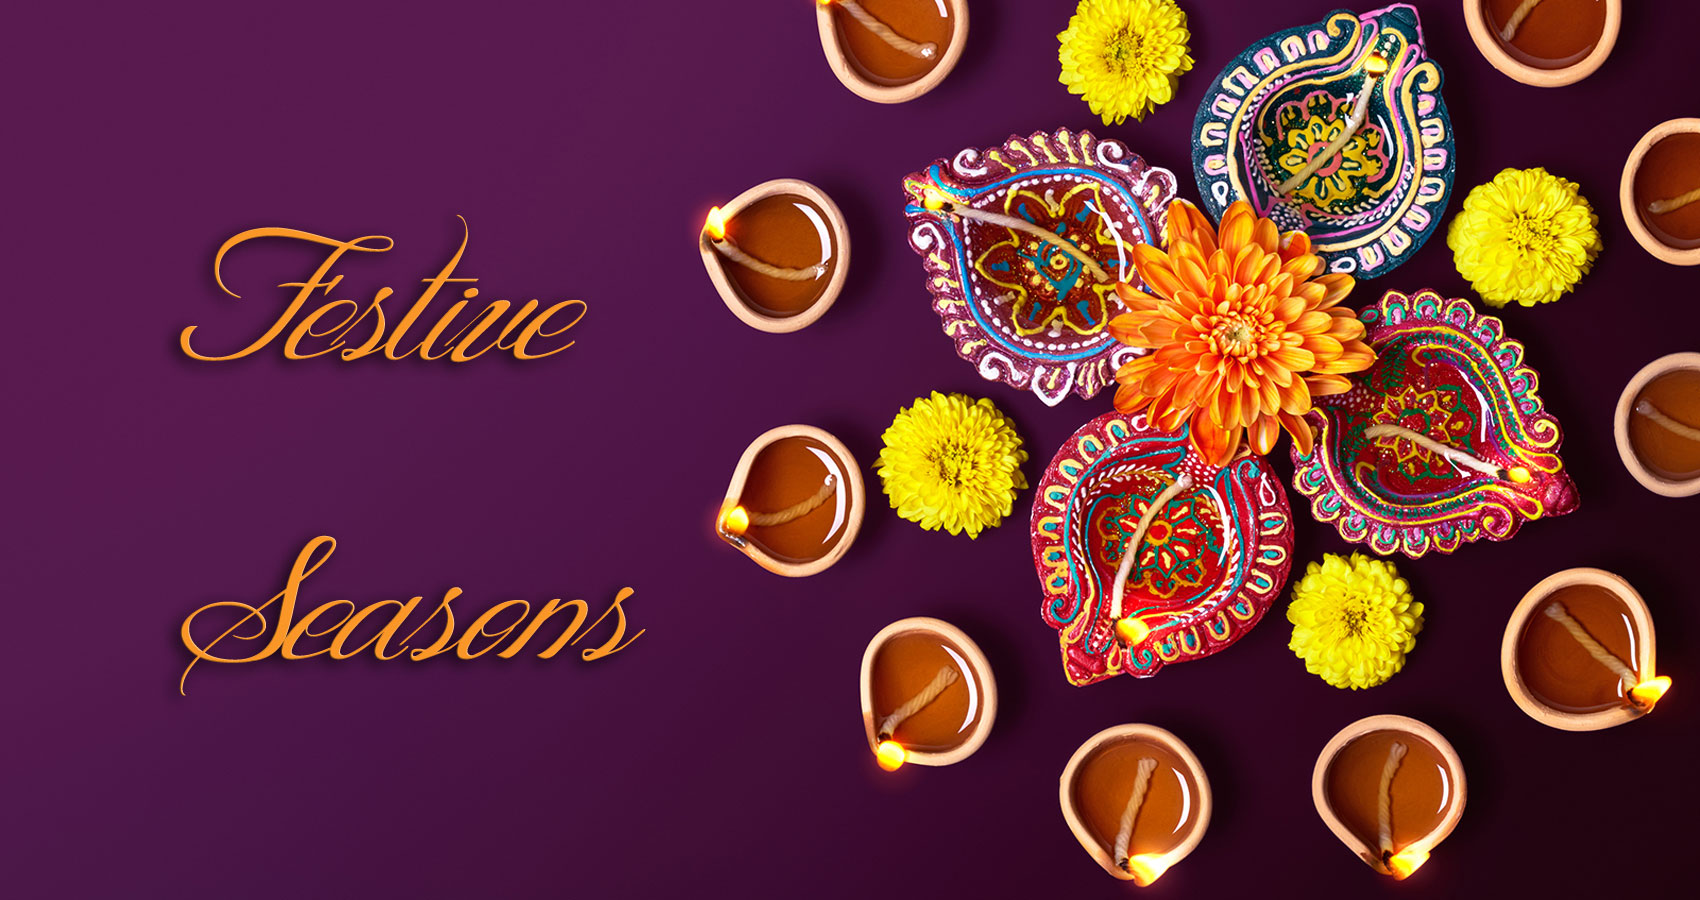 Festive Seasons written by Dilip Mohapatra at Spillwords.com